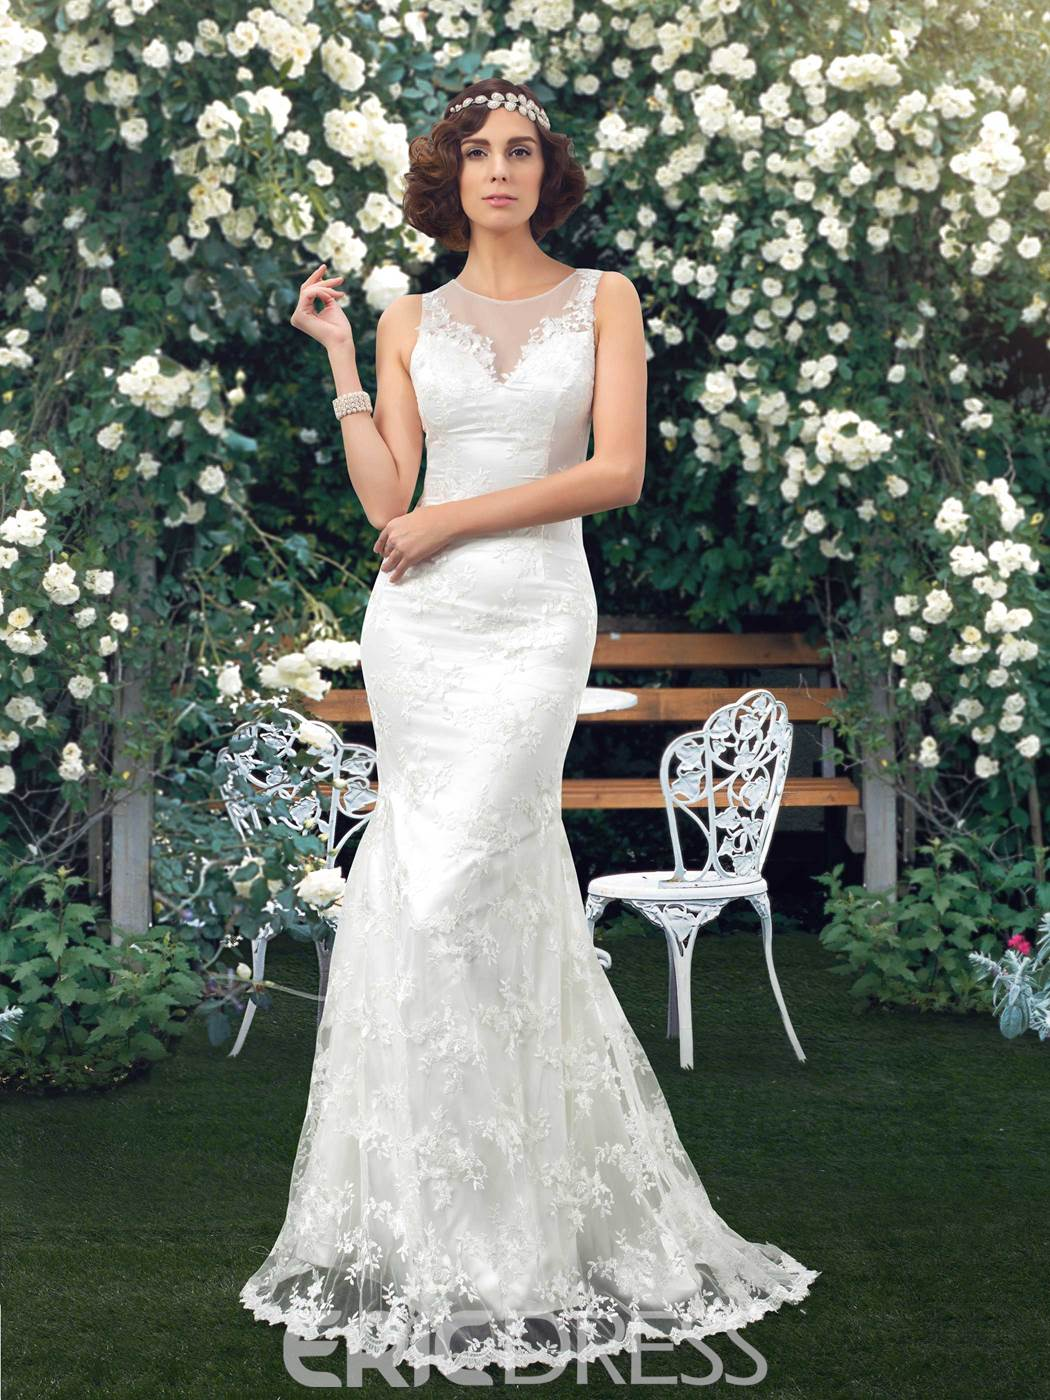 67c01d109b8e Classy Lace Mermaid Wedding Dress 11217945 - Ericdress.com